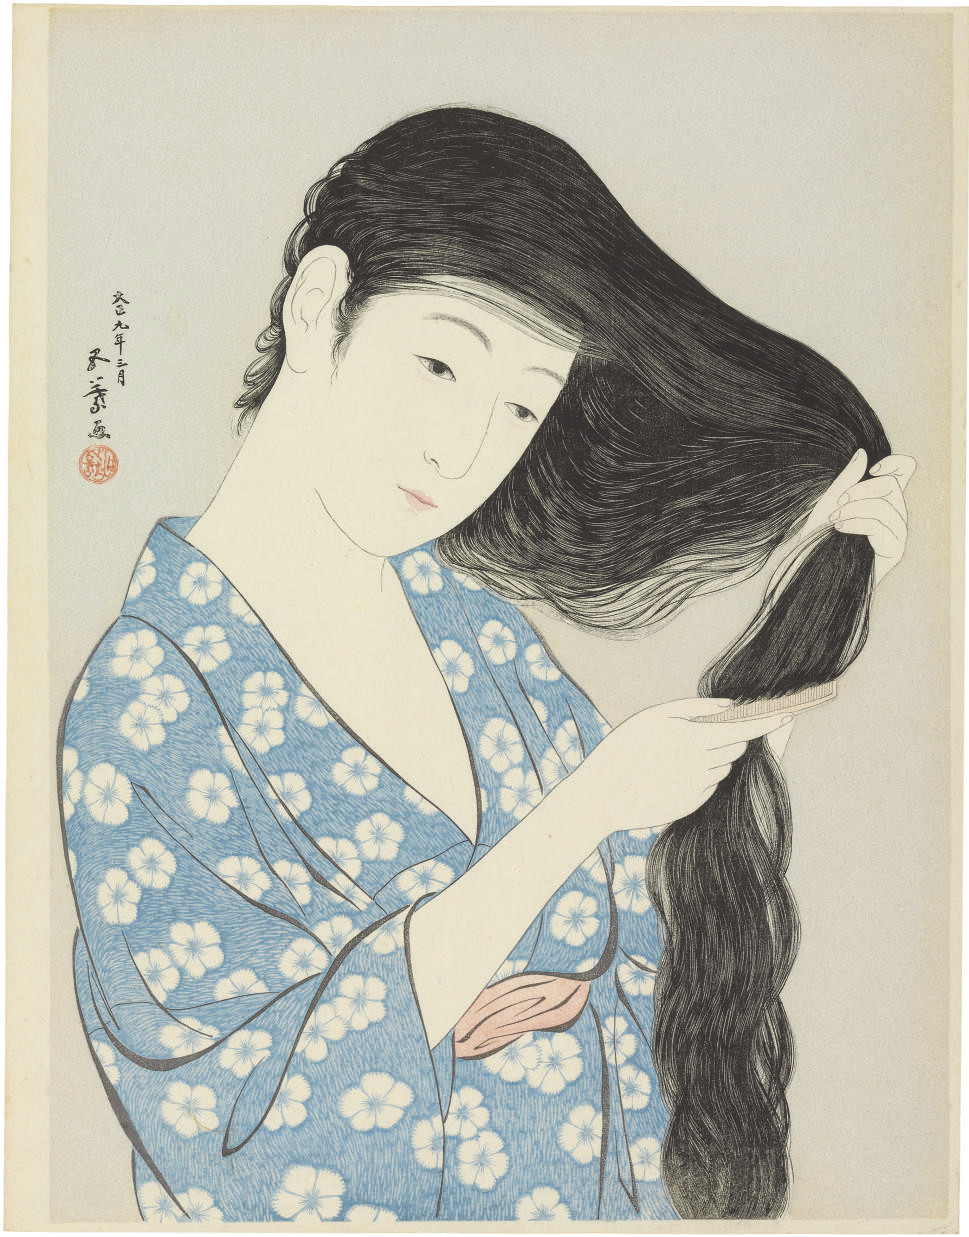 Woman brushing her hair, 1920.3  Kyoto Sanjo Ohashi (Great Bridge at Sanjo, Kyoto), 1920.1